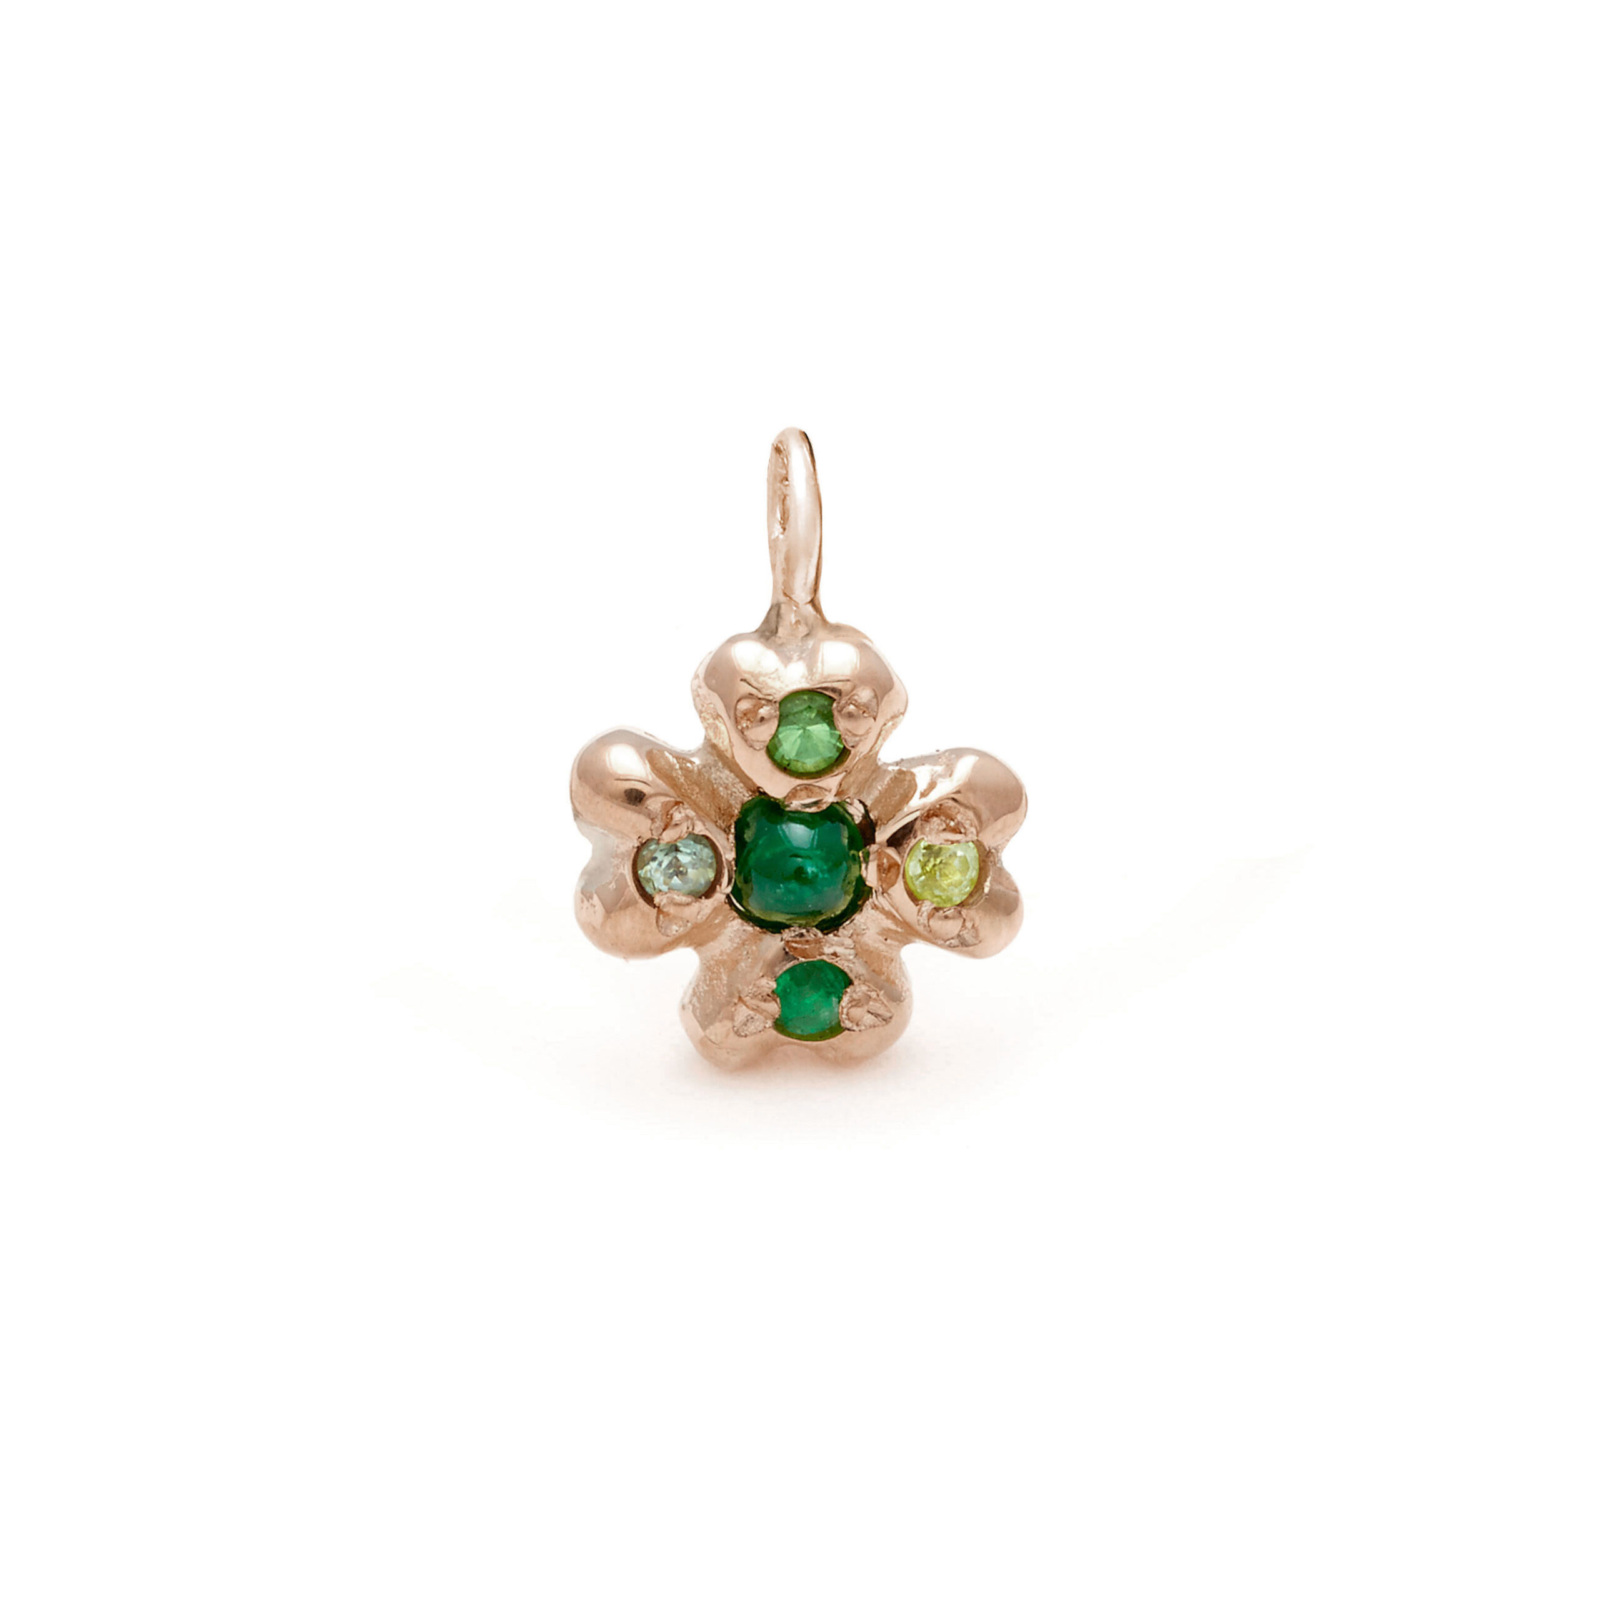 clover lucky charm jewelry - pink gold